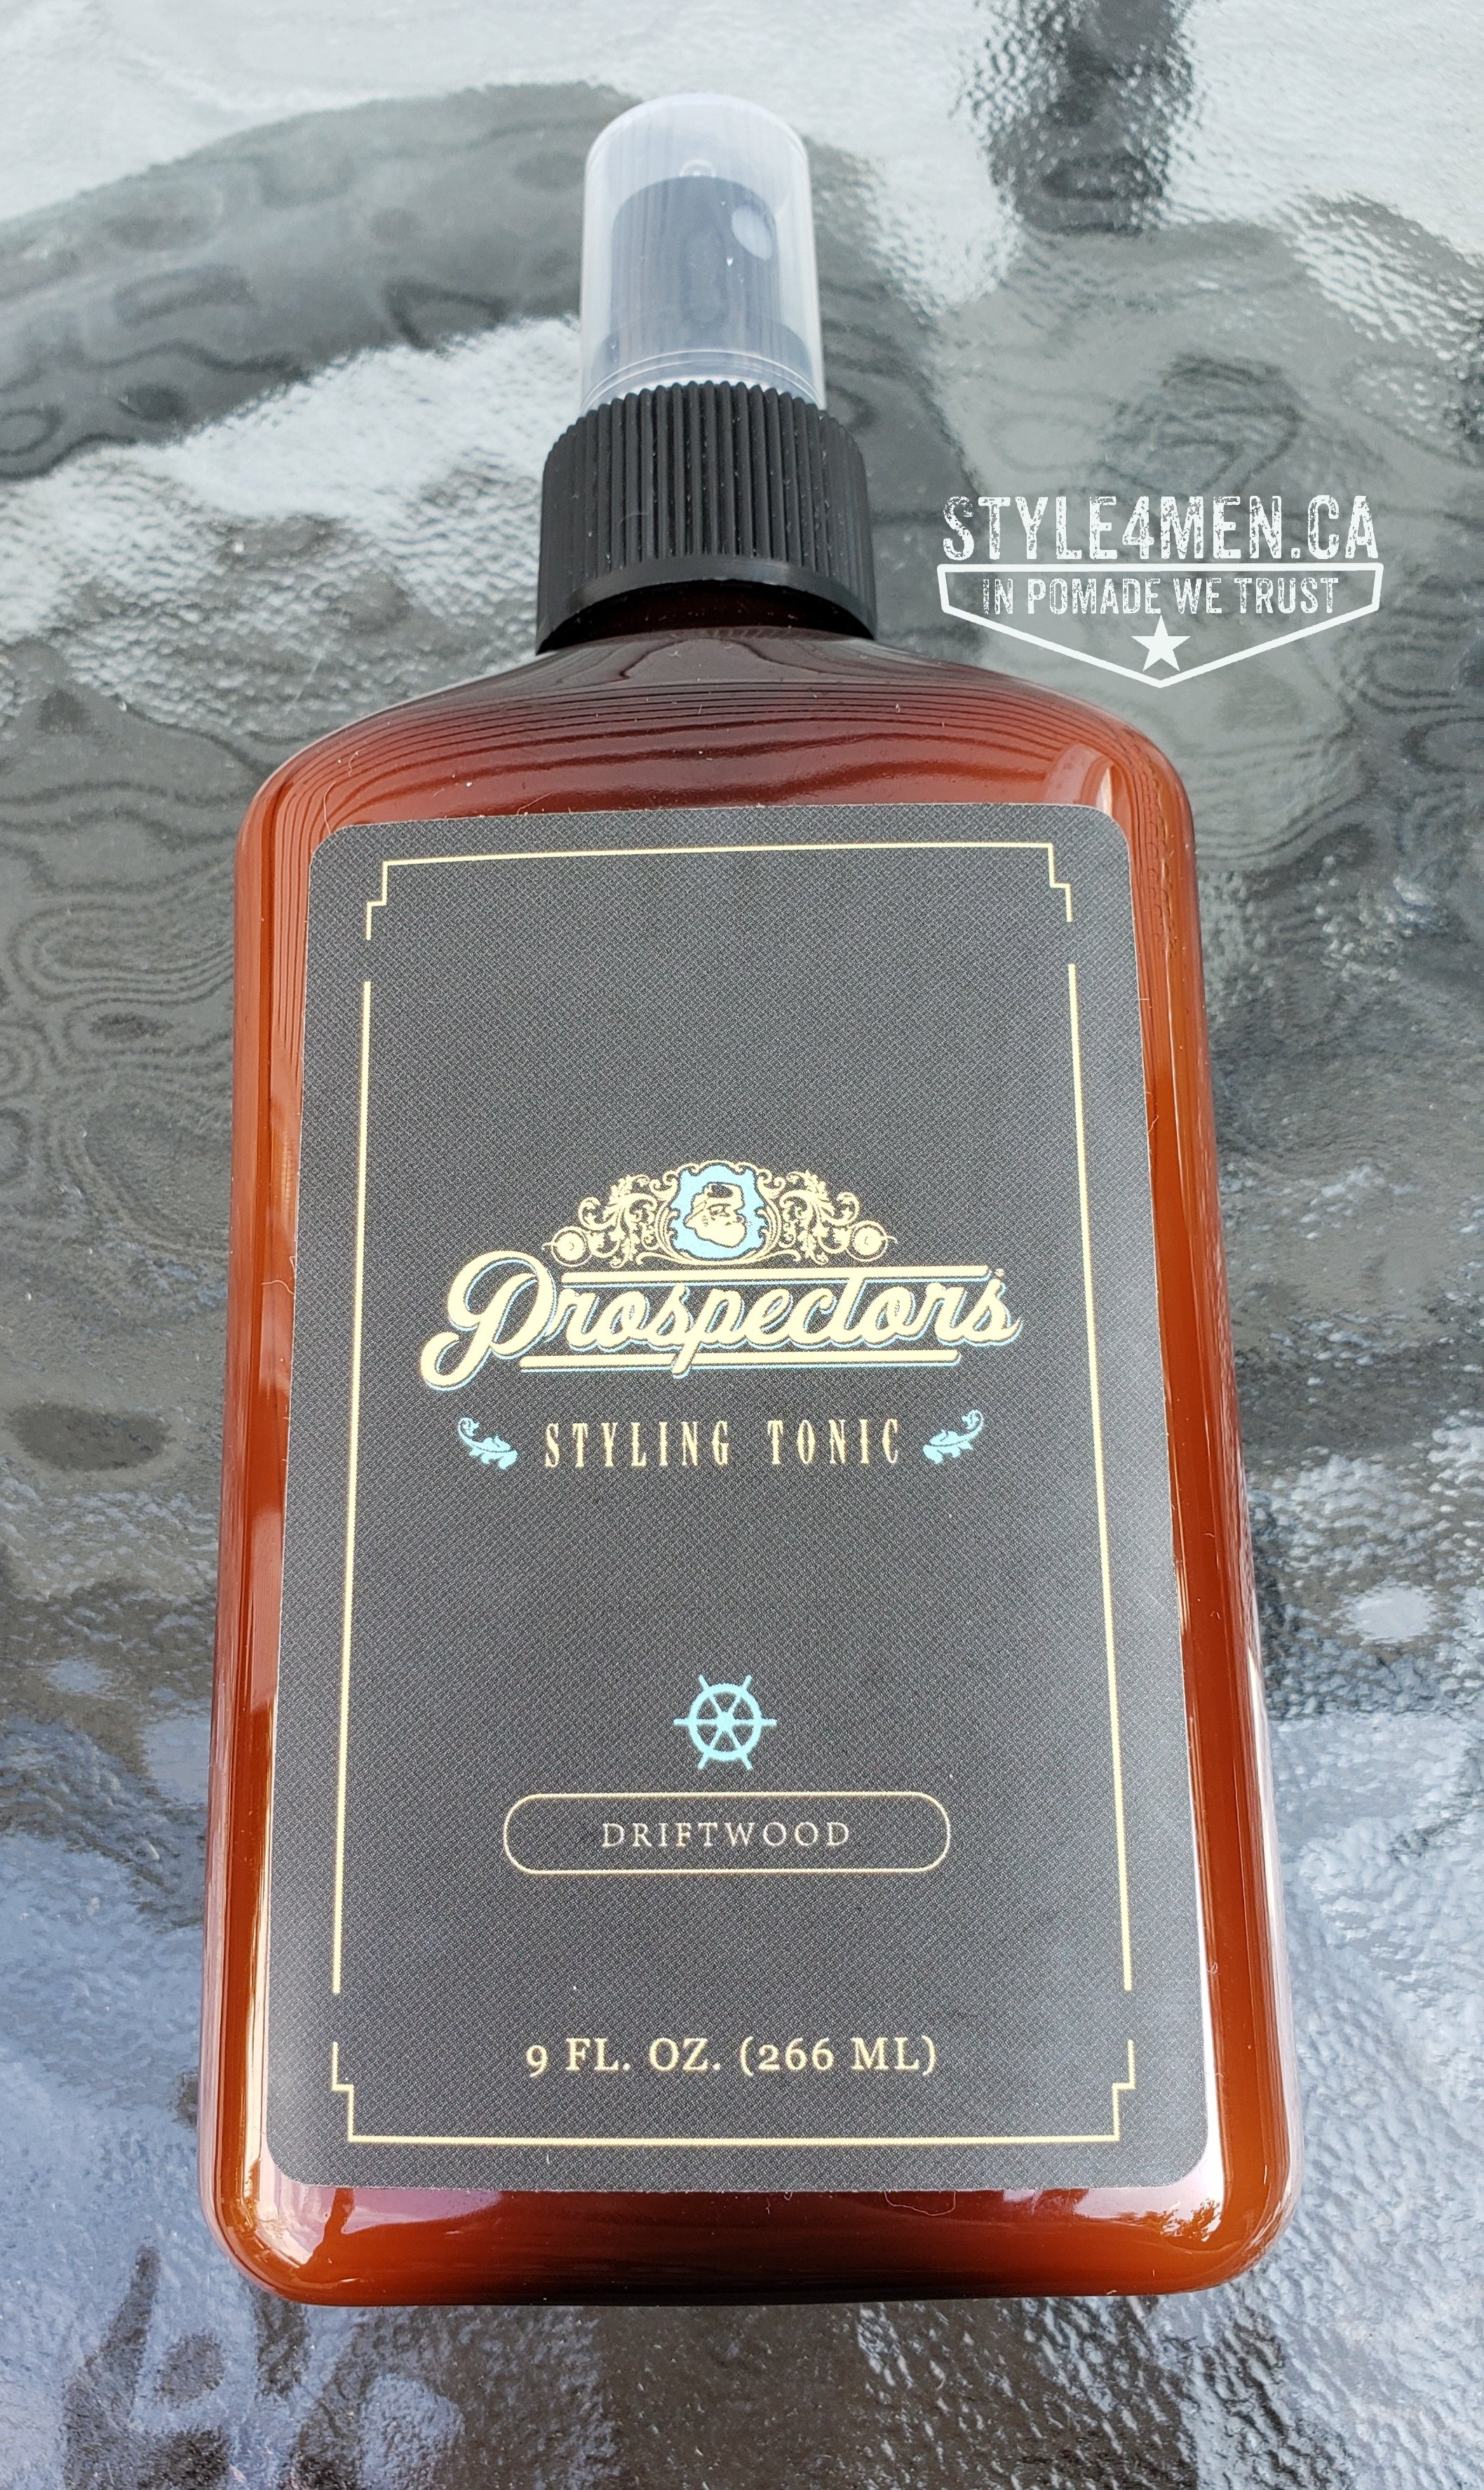 Prospectors Styling Spray